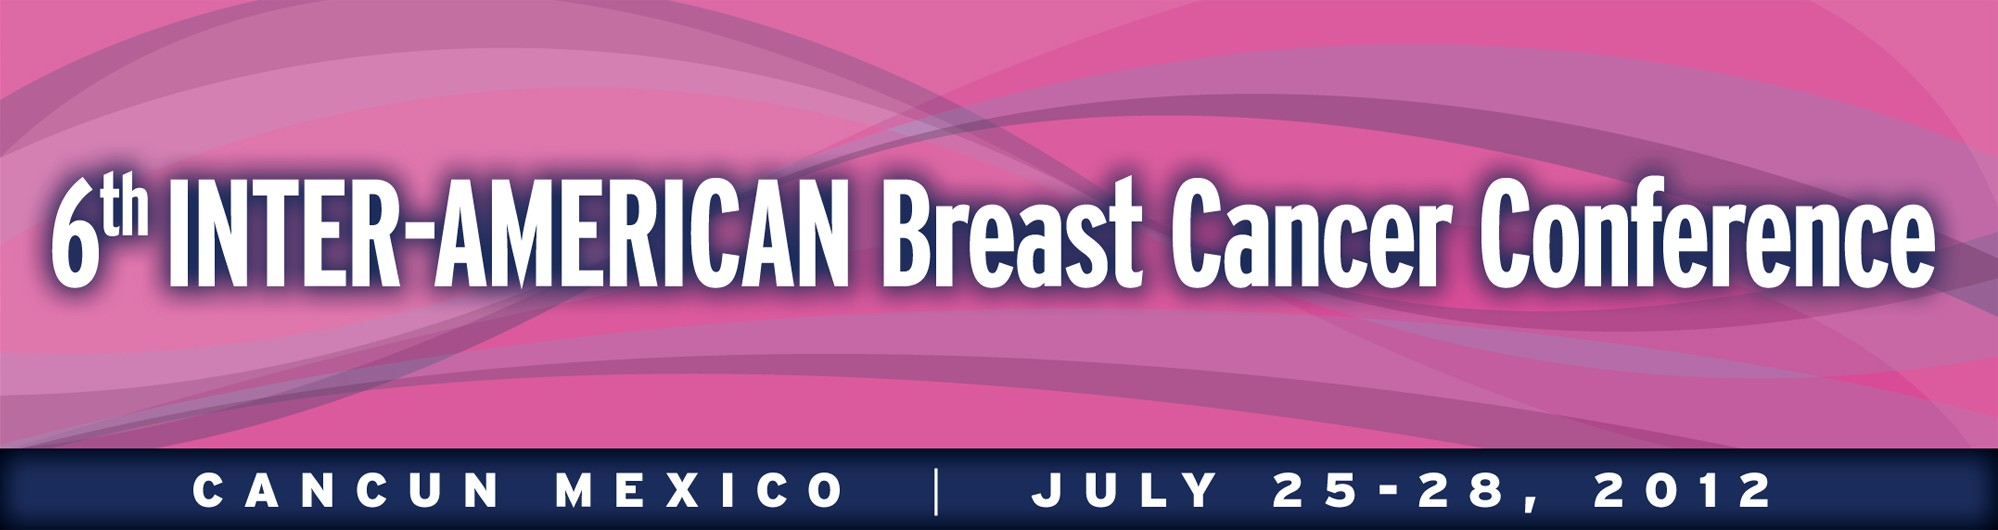 6th Inter-American Breast Cancer Conference